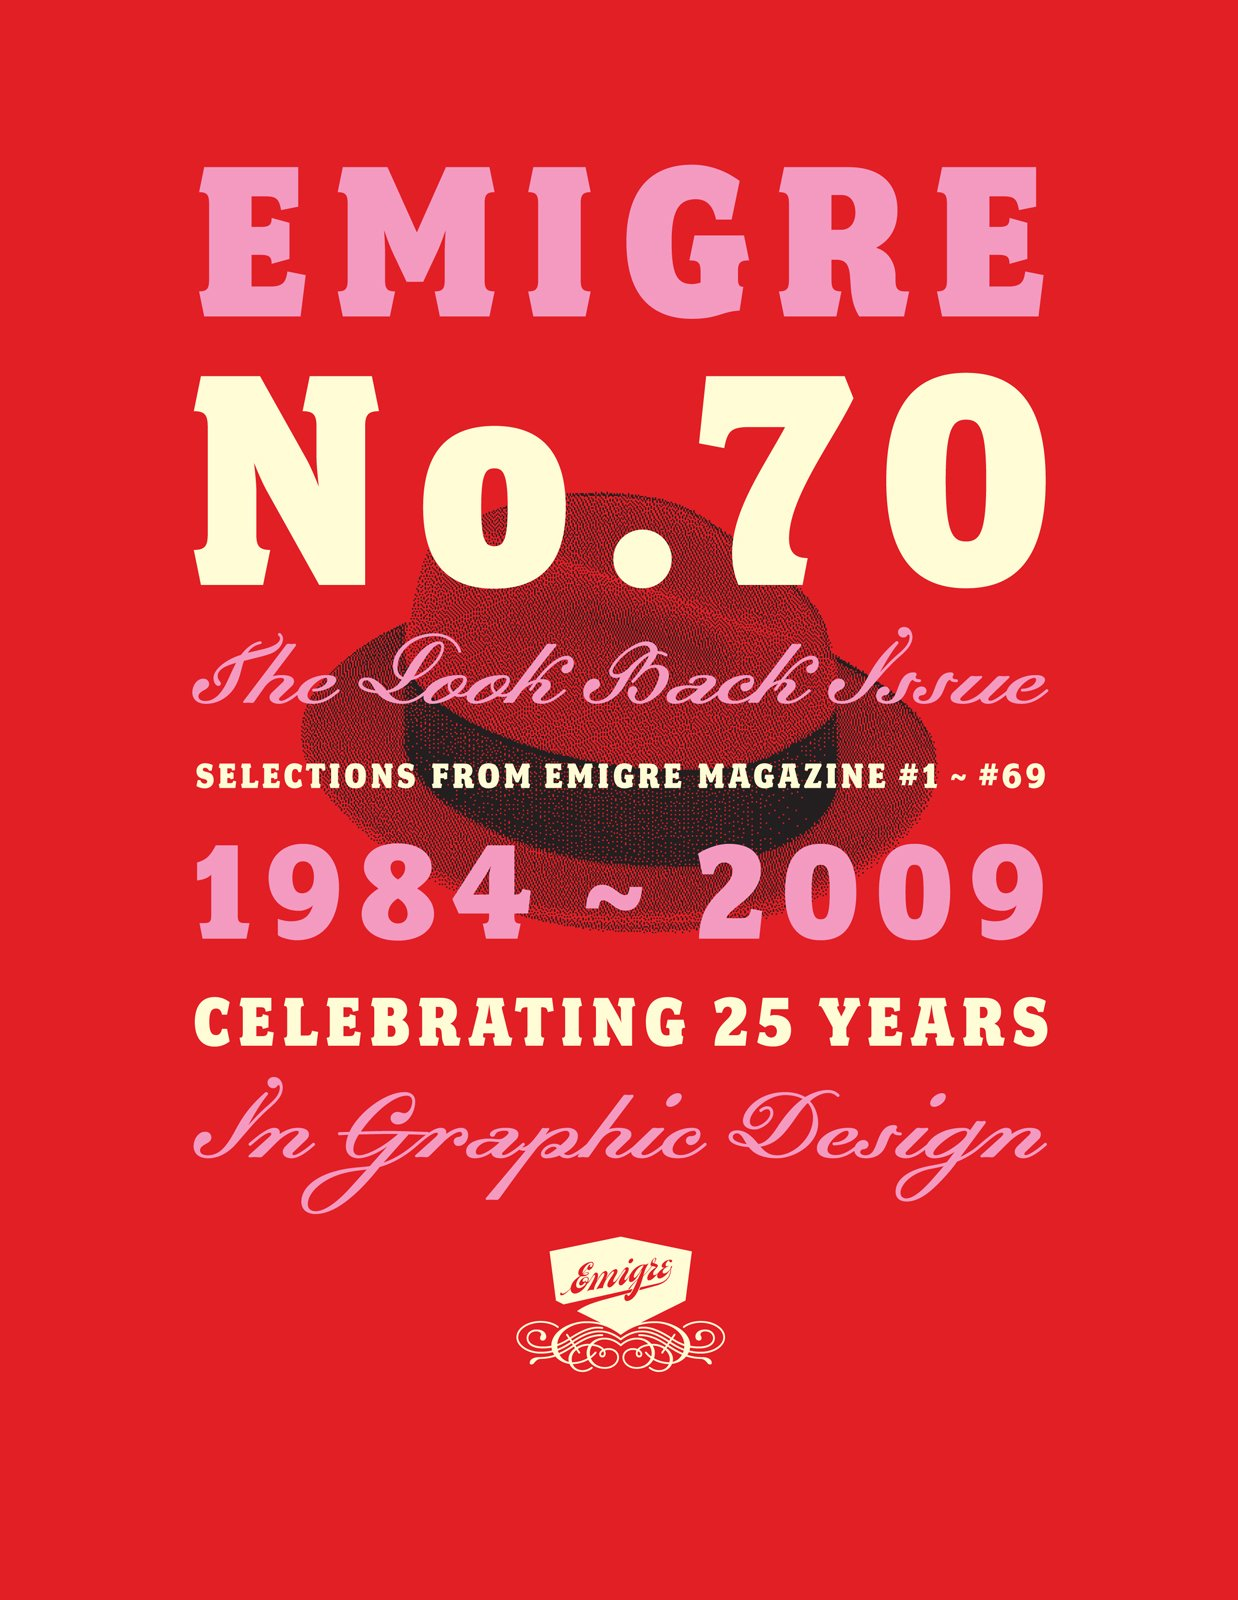 The cover of Emigre No. 70: The Look Back Issue, 25 Years Years in Graphic Design. San Francisco's Gallery 16 celebrates the publication and foundry in its exhibit Emigre at Gallery 16, on display through January 29, 2010. Image courtesy of Gingko Press.  Photo 1 of 15 in Events this Weekend: 1.28-1.31